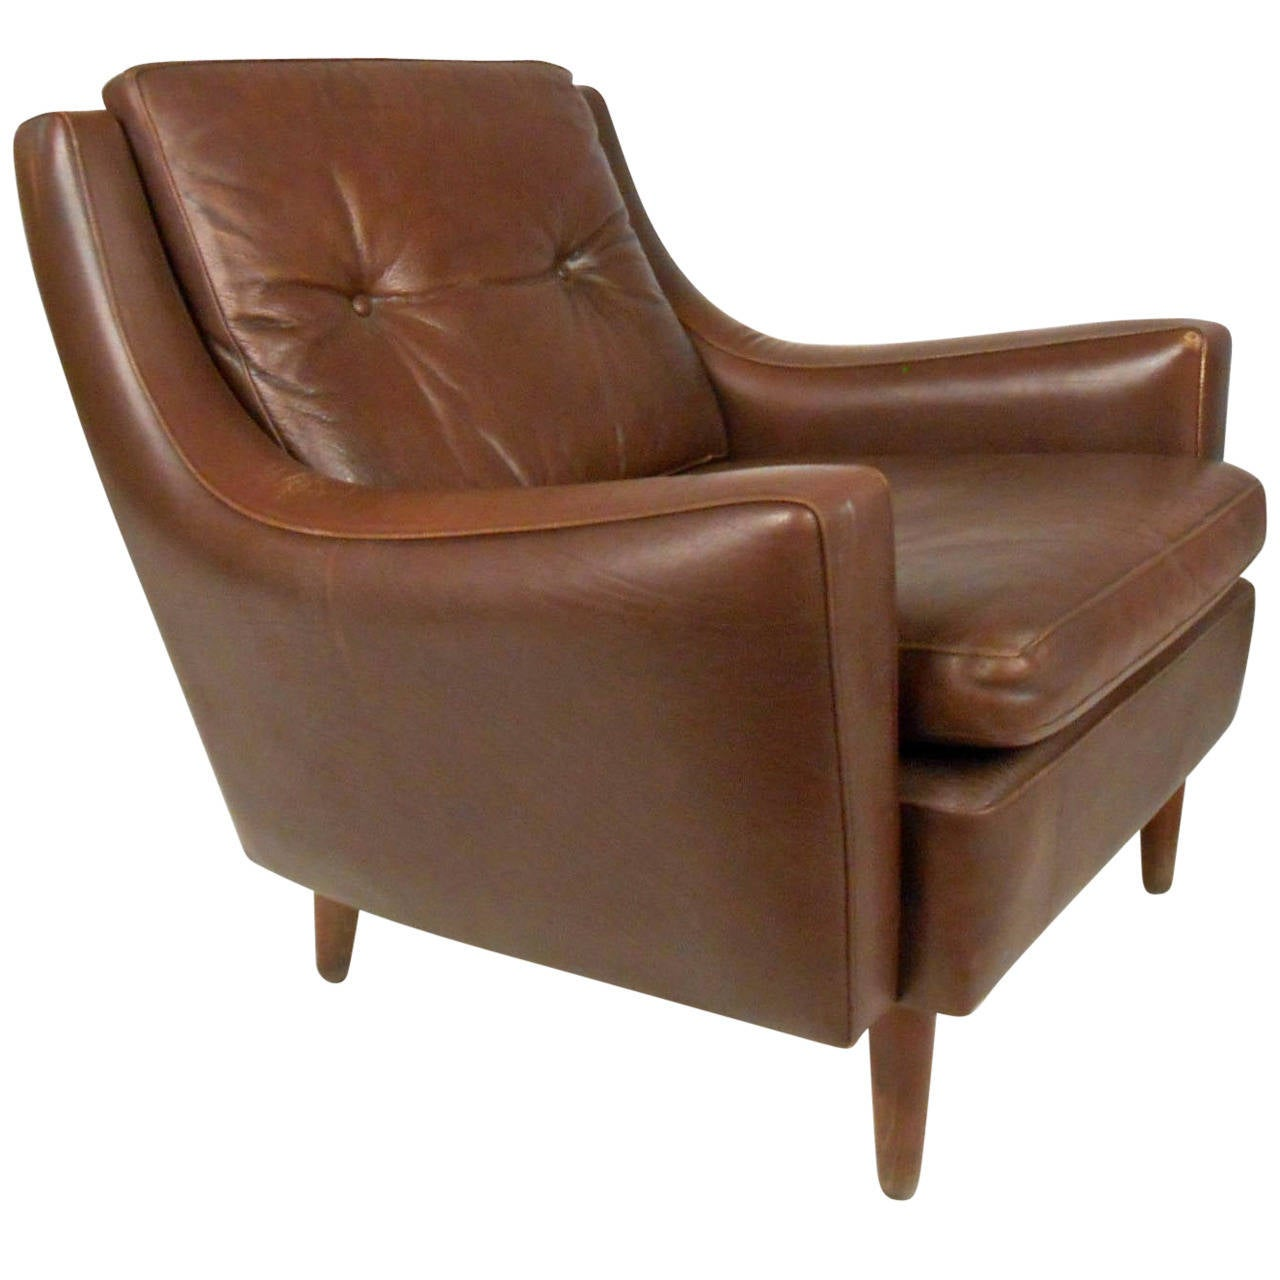 small leather club chairs rooms to go sleeper chair mid century modern tufted brown at 1stdibs